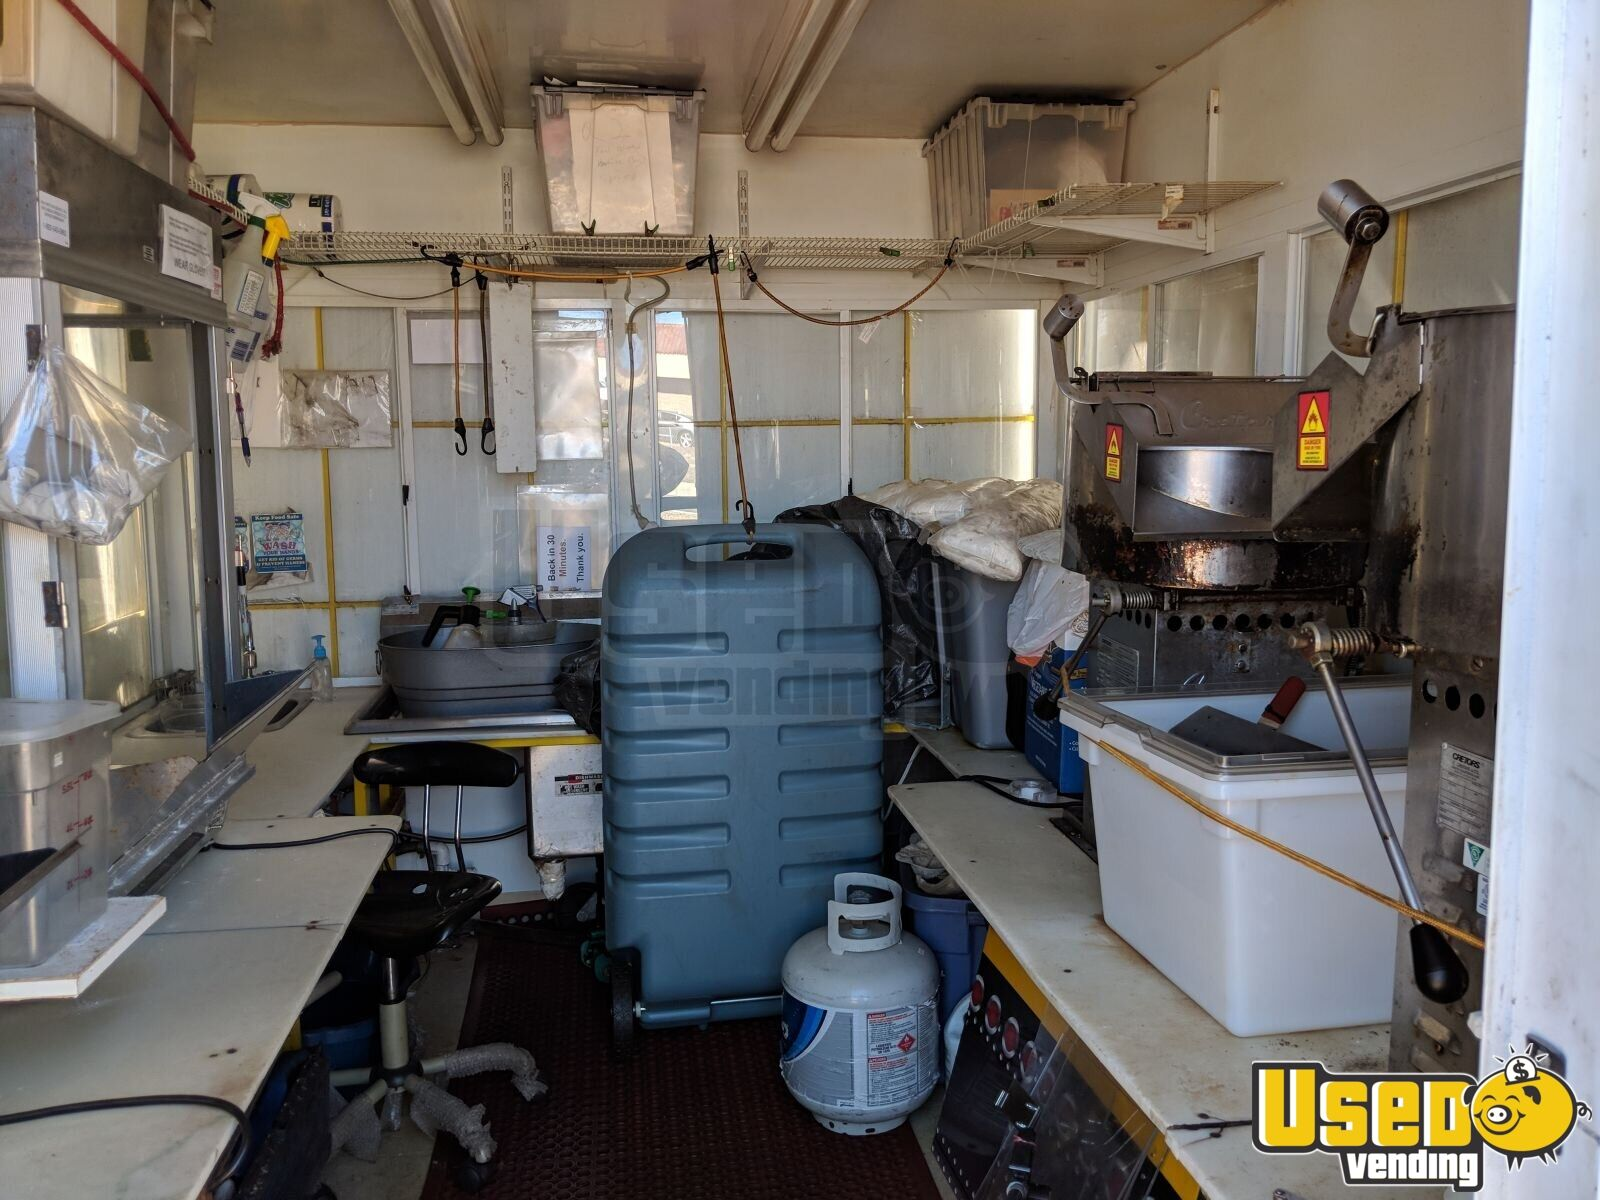 2010 Custom 10 Footer All-purpose Food Trailer Insulated Walls California for Sale - 6